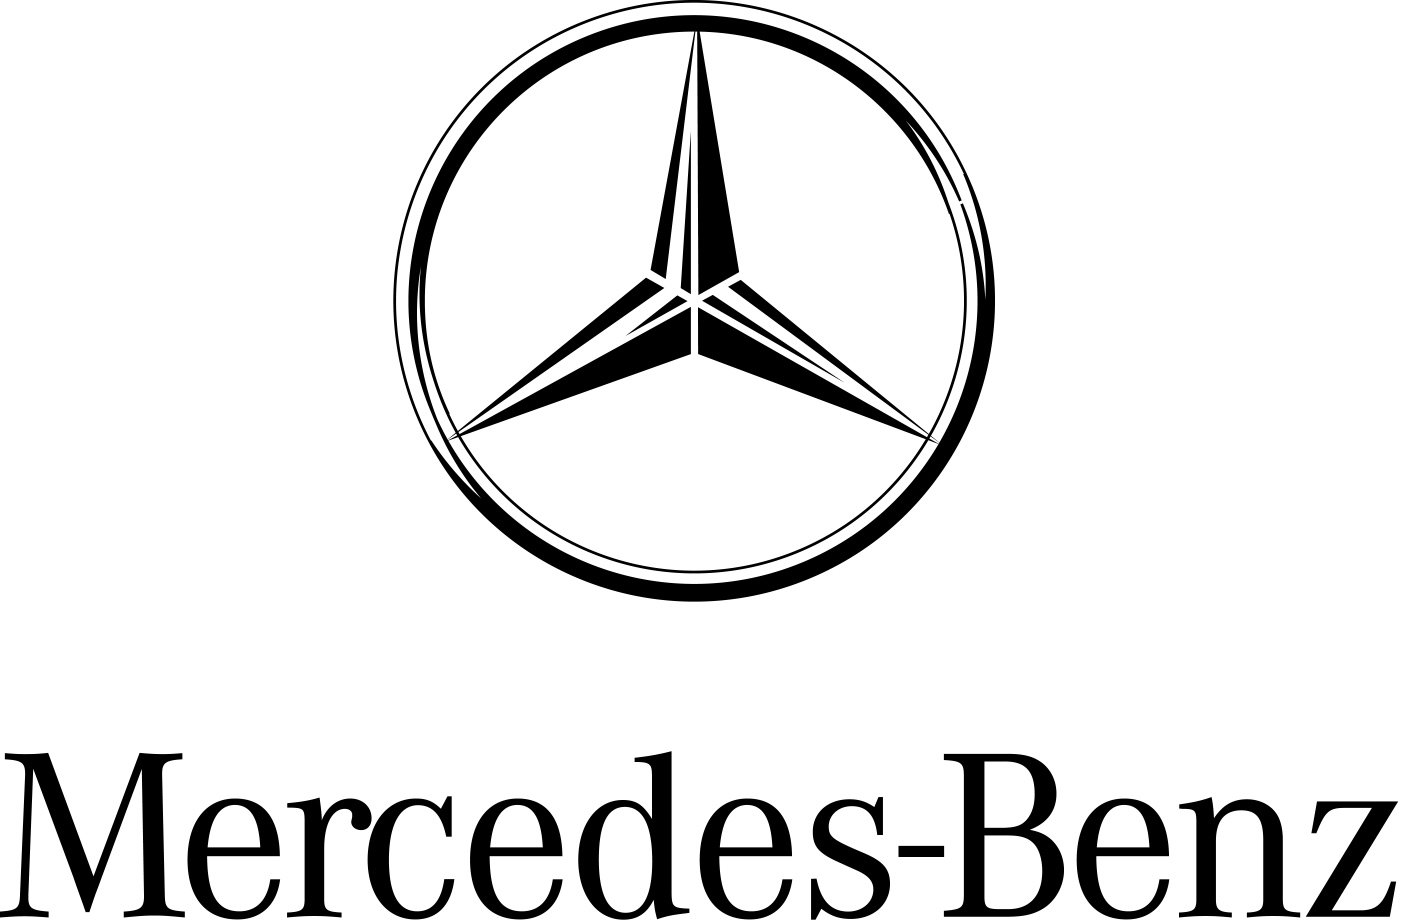 Mercedes Logo besides Autolite 4100 Exploded View ep 471 as well 3n8a5 2001 Saturn Overhead Cam Timing Marks I Put Back Together as well 97 Dodge Ram 1500 5 2l Engine Diagram further 1np4b Saab Coolant Temp Sensor The Coolant Reservoir Without Luck. on saab 9 5 engine